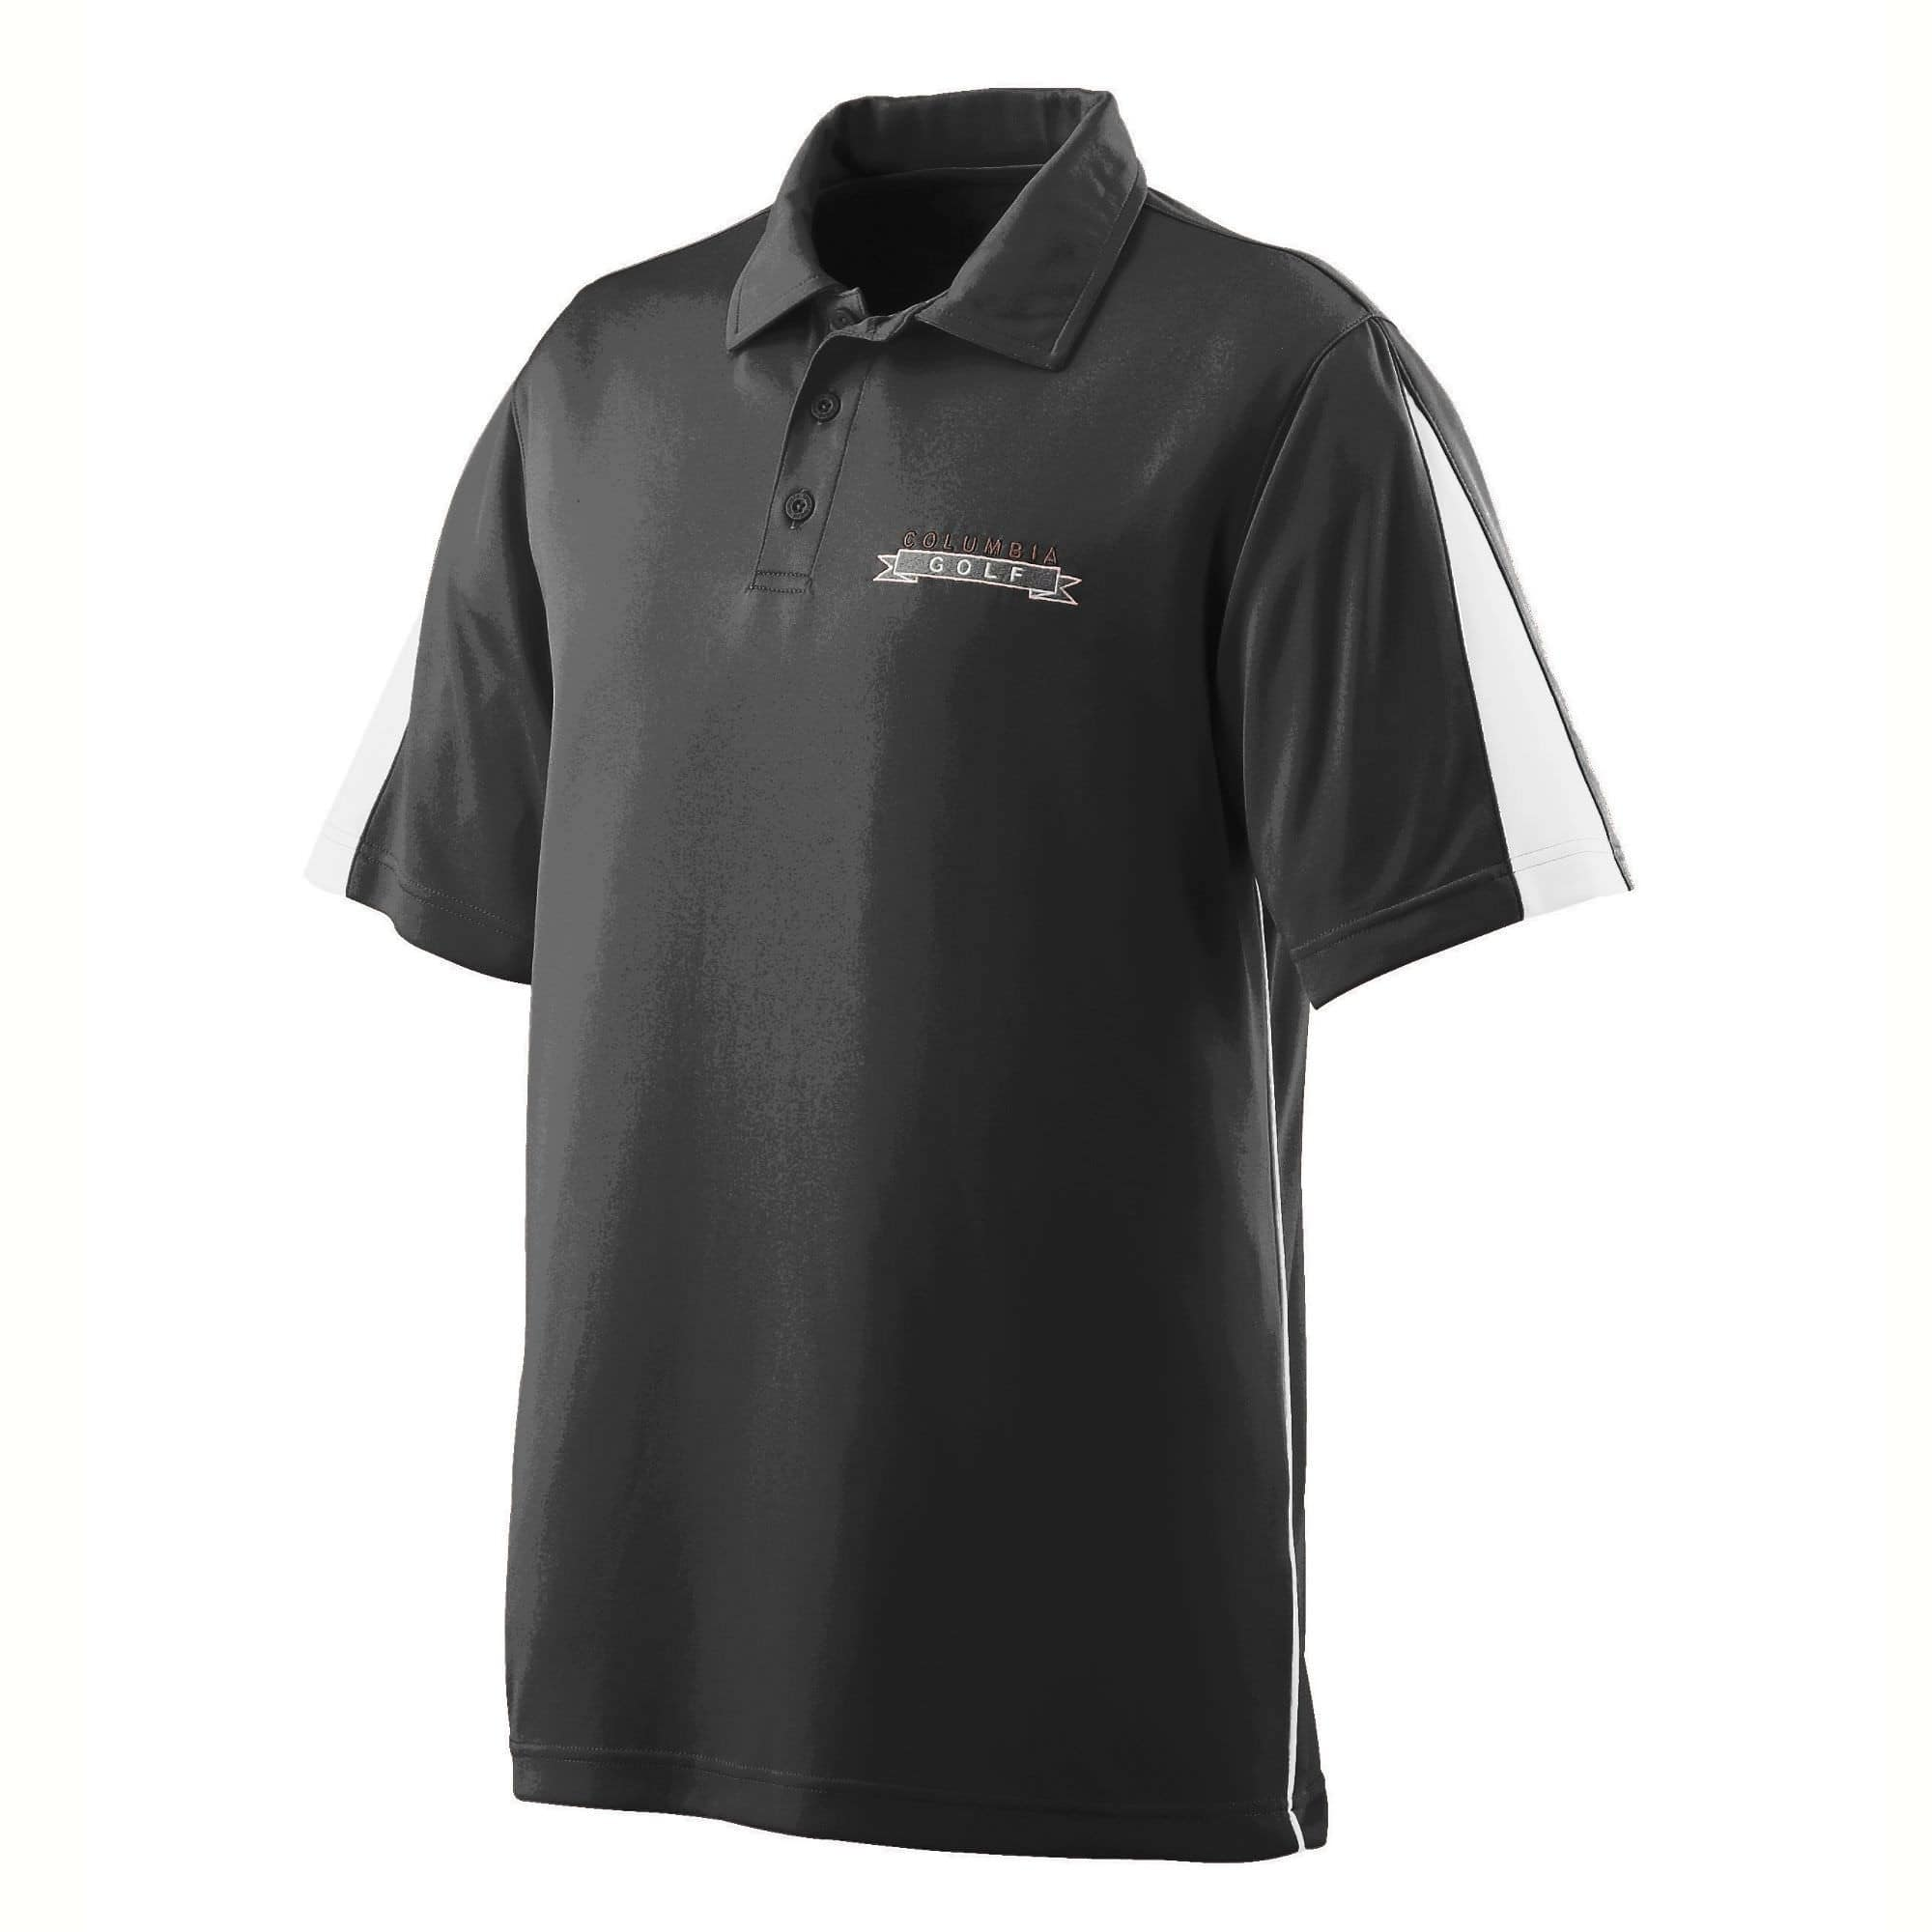 Augusta Active: Poly Spandex Polo $5, Men's Wicking Duo Knit Game Shorts $5, Revolution Jacket $8, Women's Synergy Pullover $7, More + free shipping $4.98